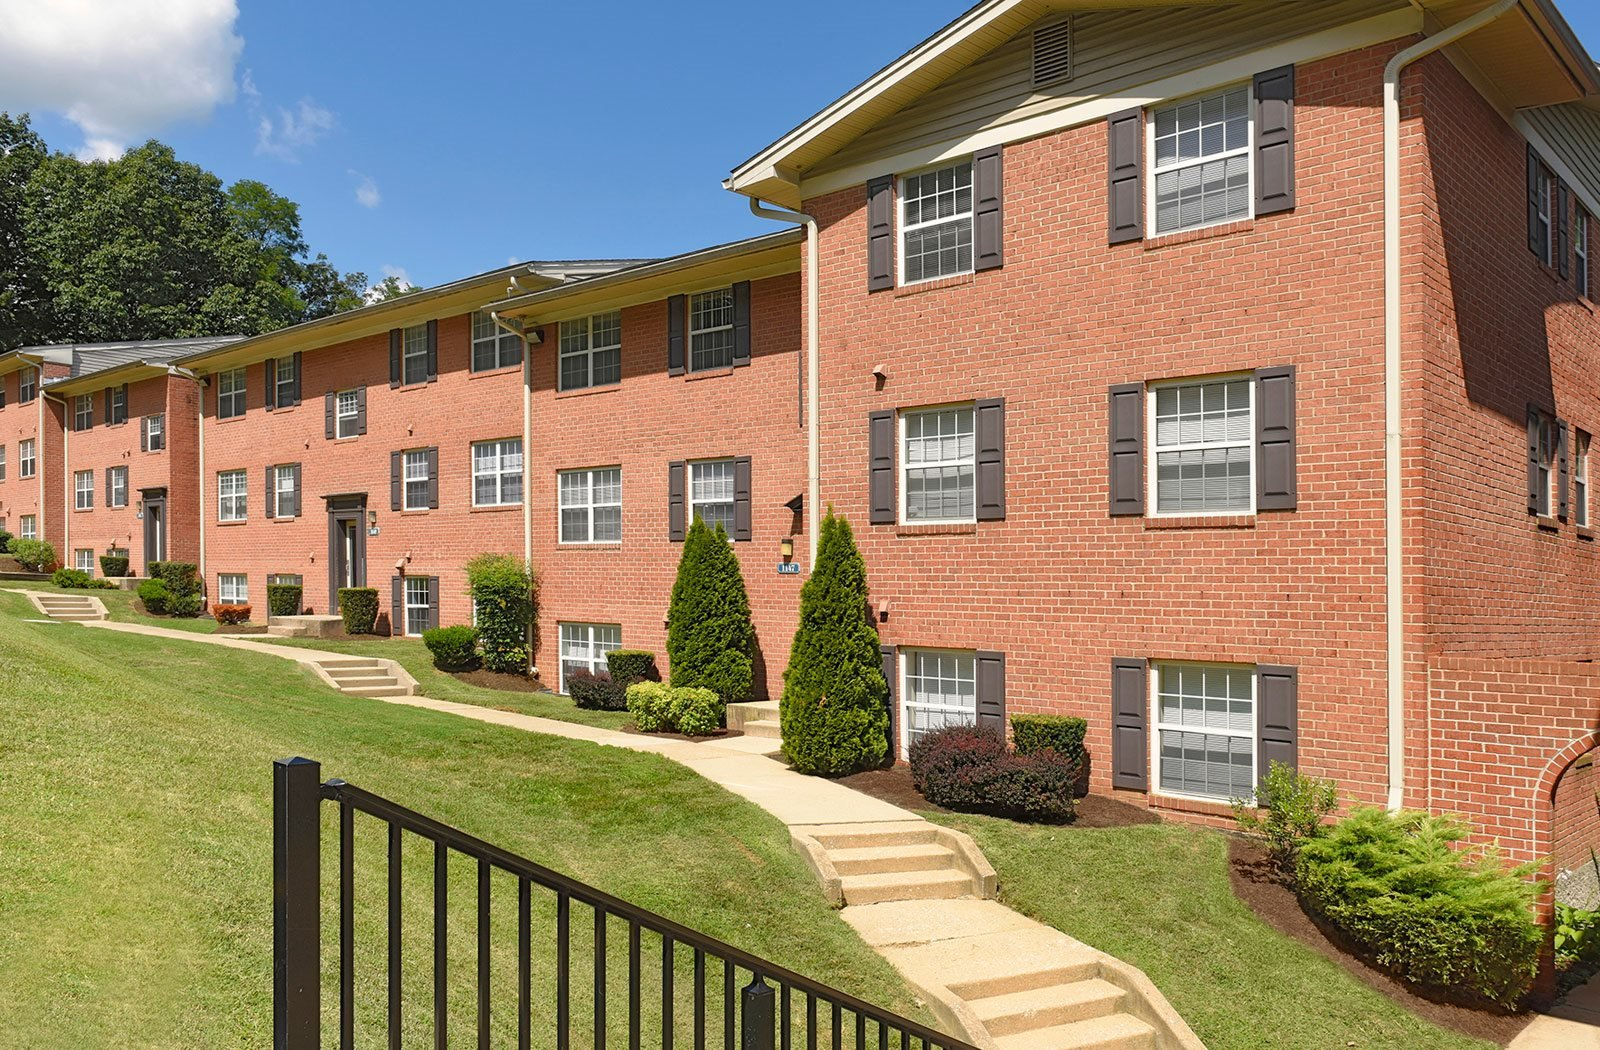 Renovated Apartment Homes Available at Kenilworth at Charles Apartments, Towson, MD, 21204